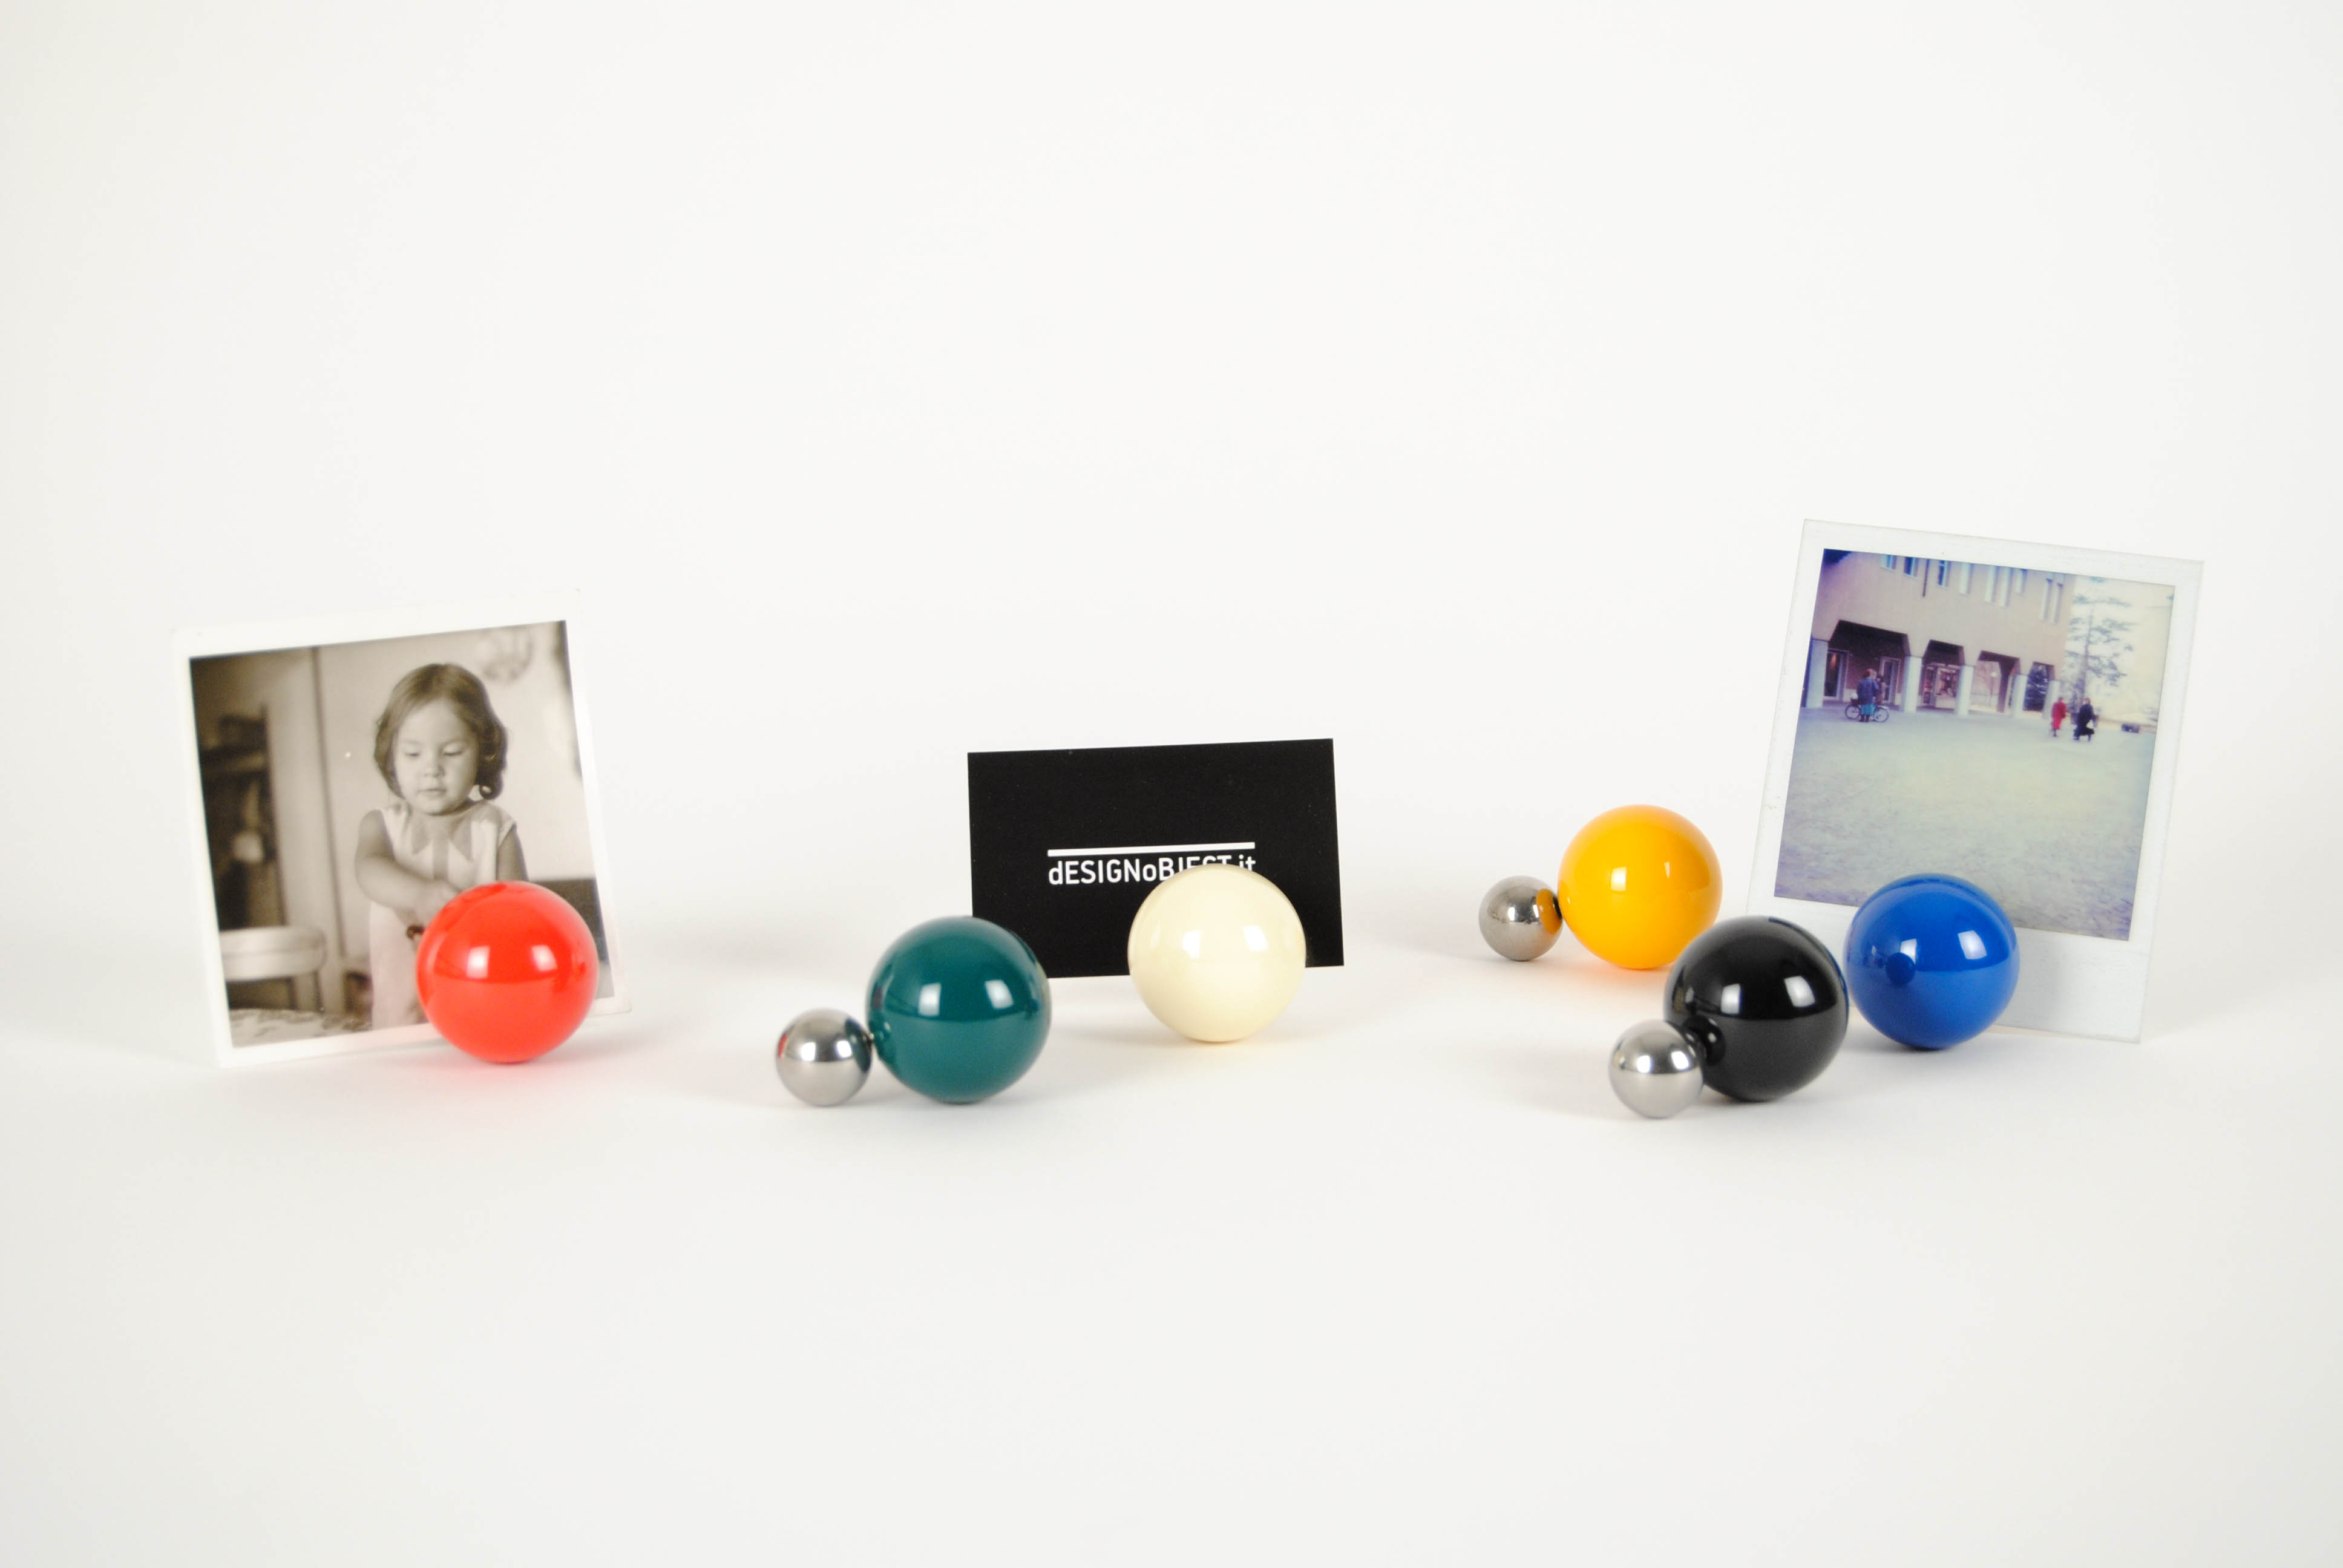 tac photo holders green black blue red white yellow magnetic with the picture inserted between the two balls